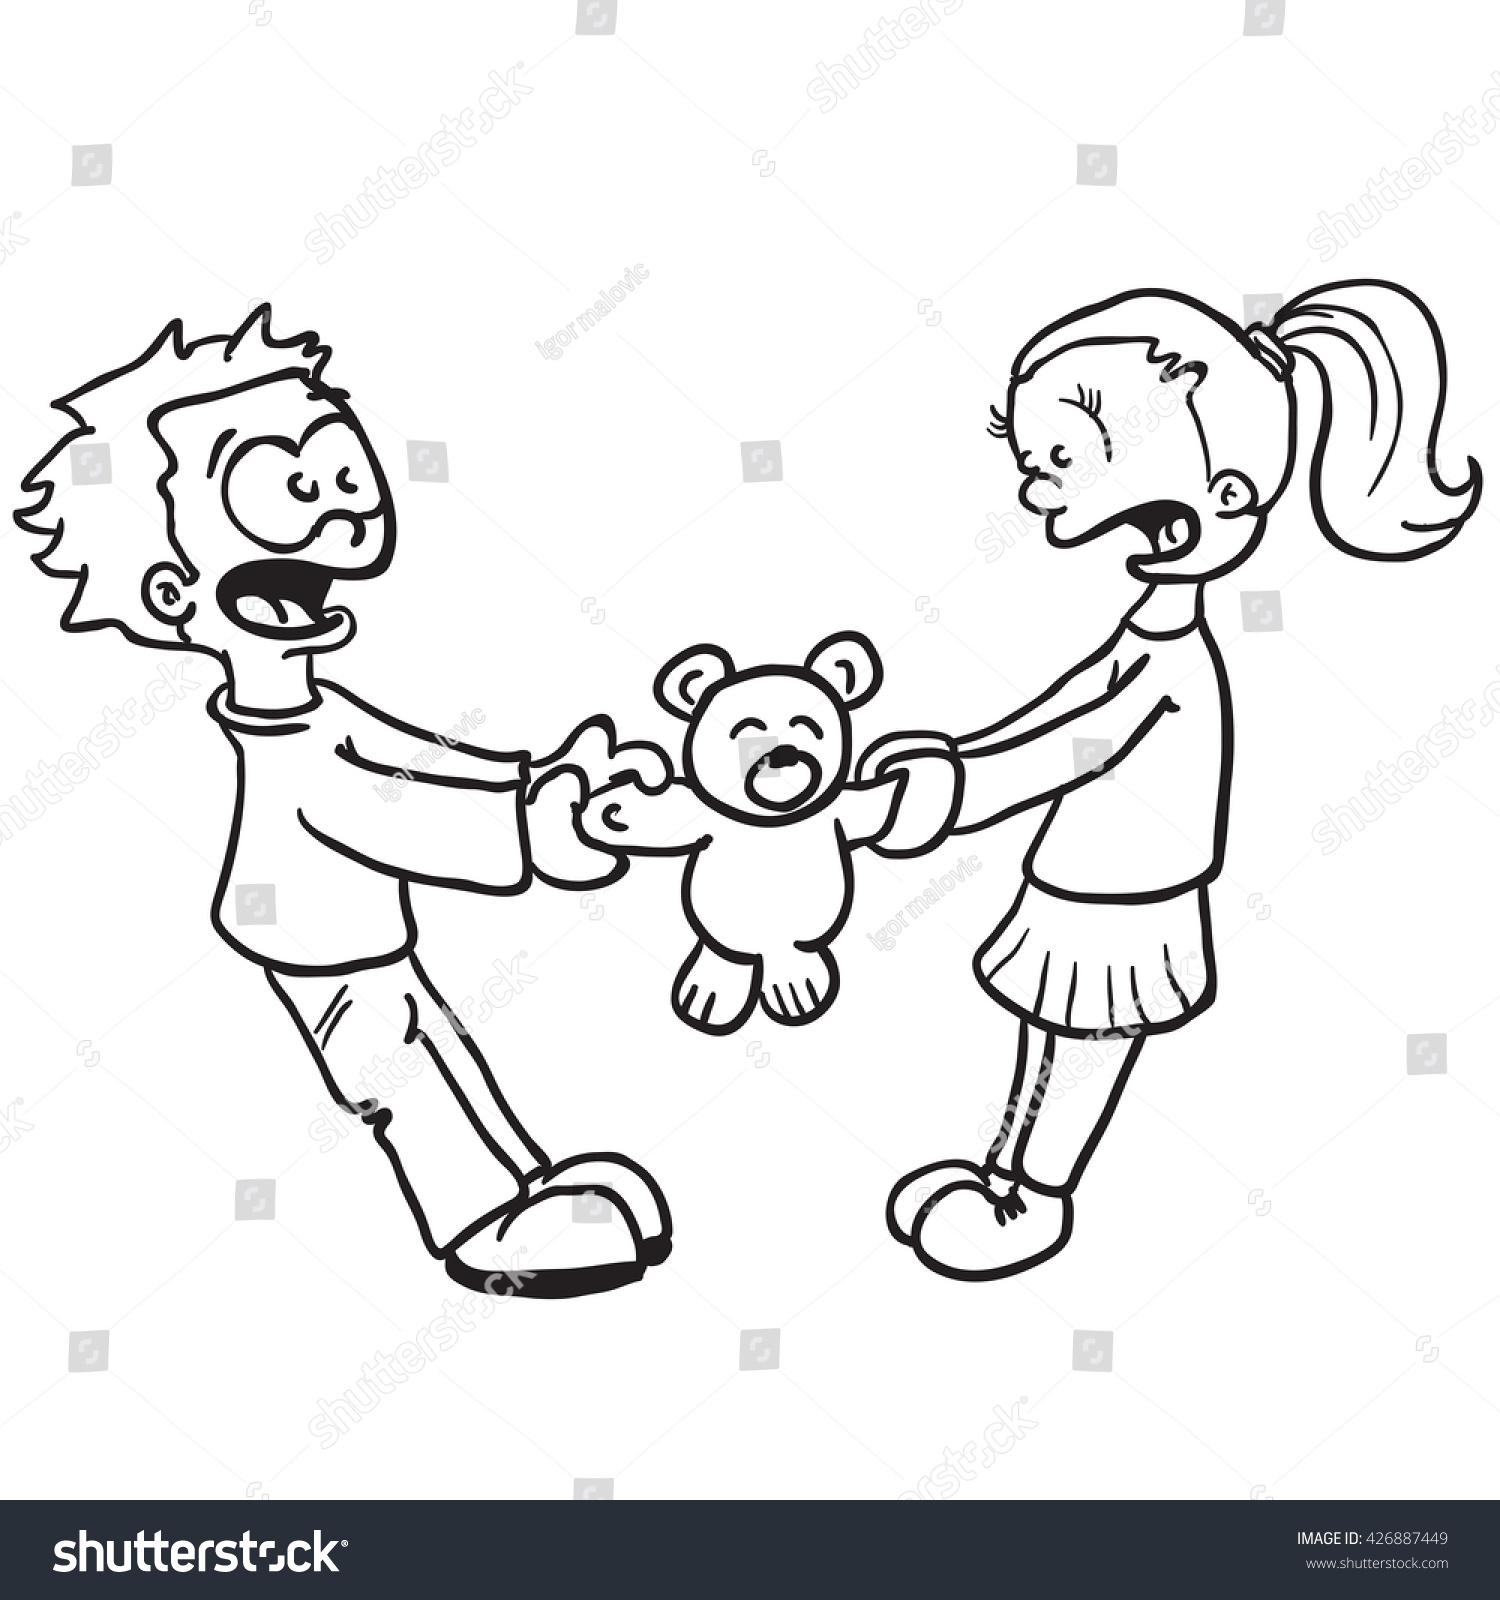 Black and white boy and girl fighting cartoon